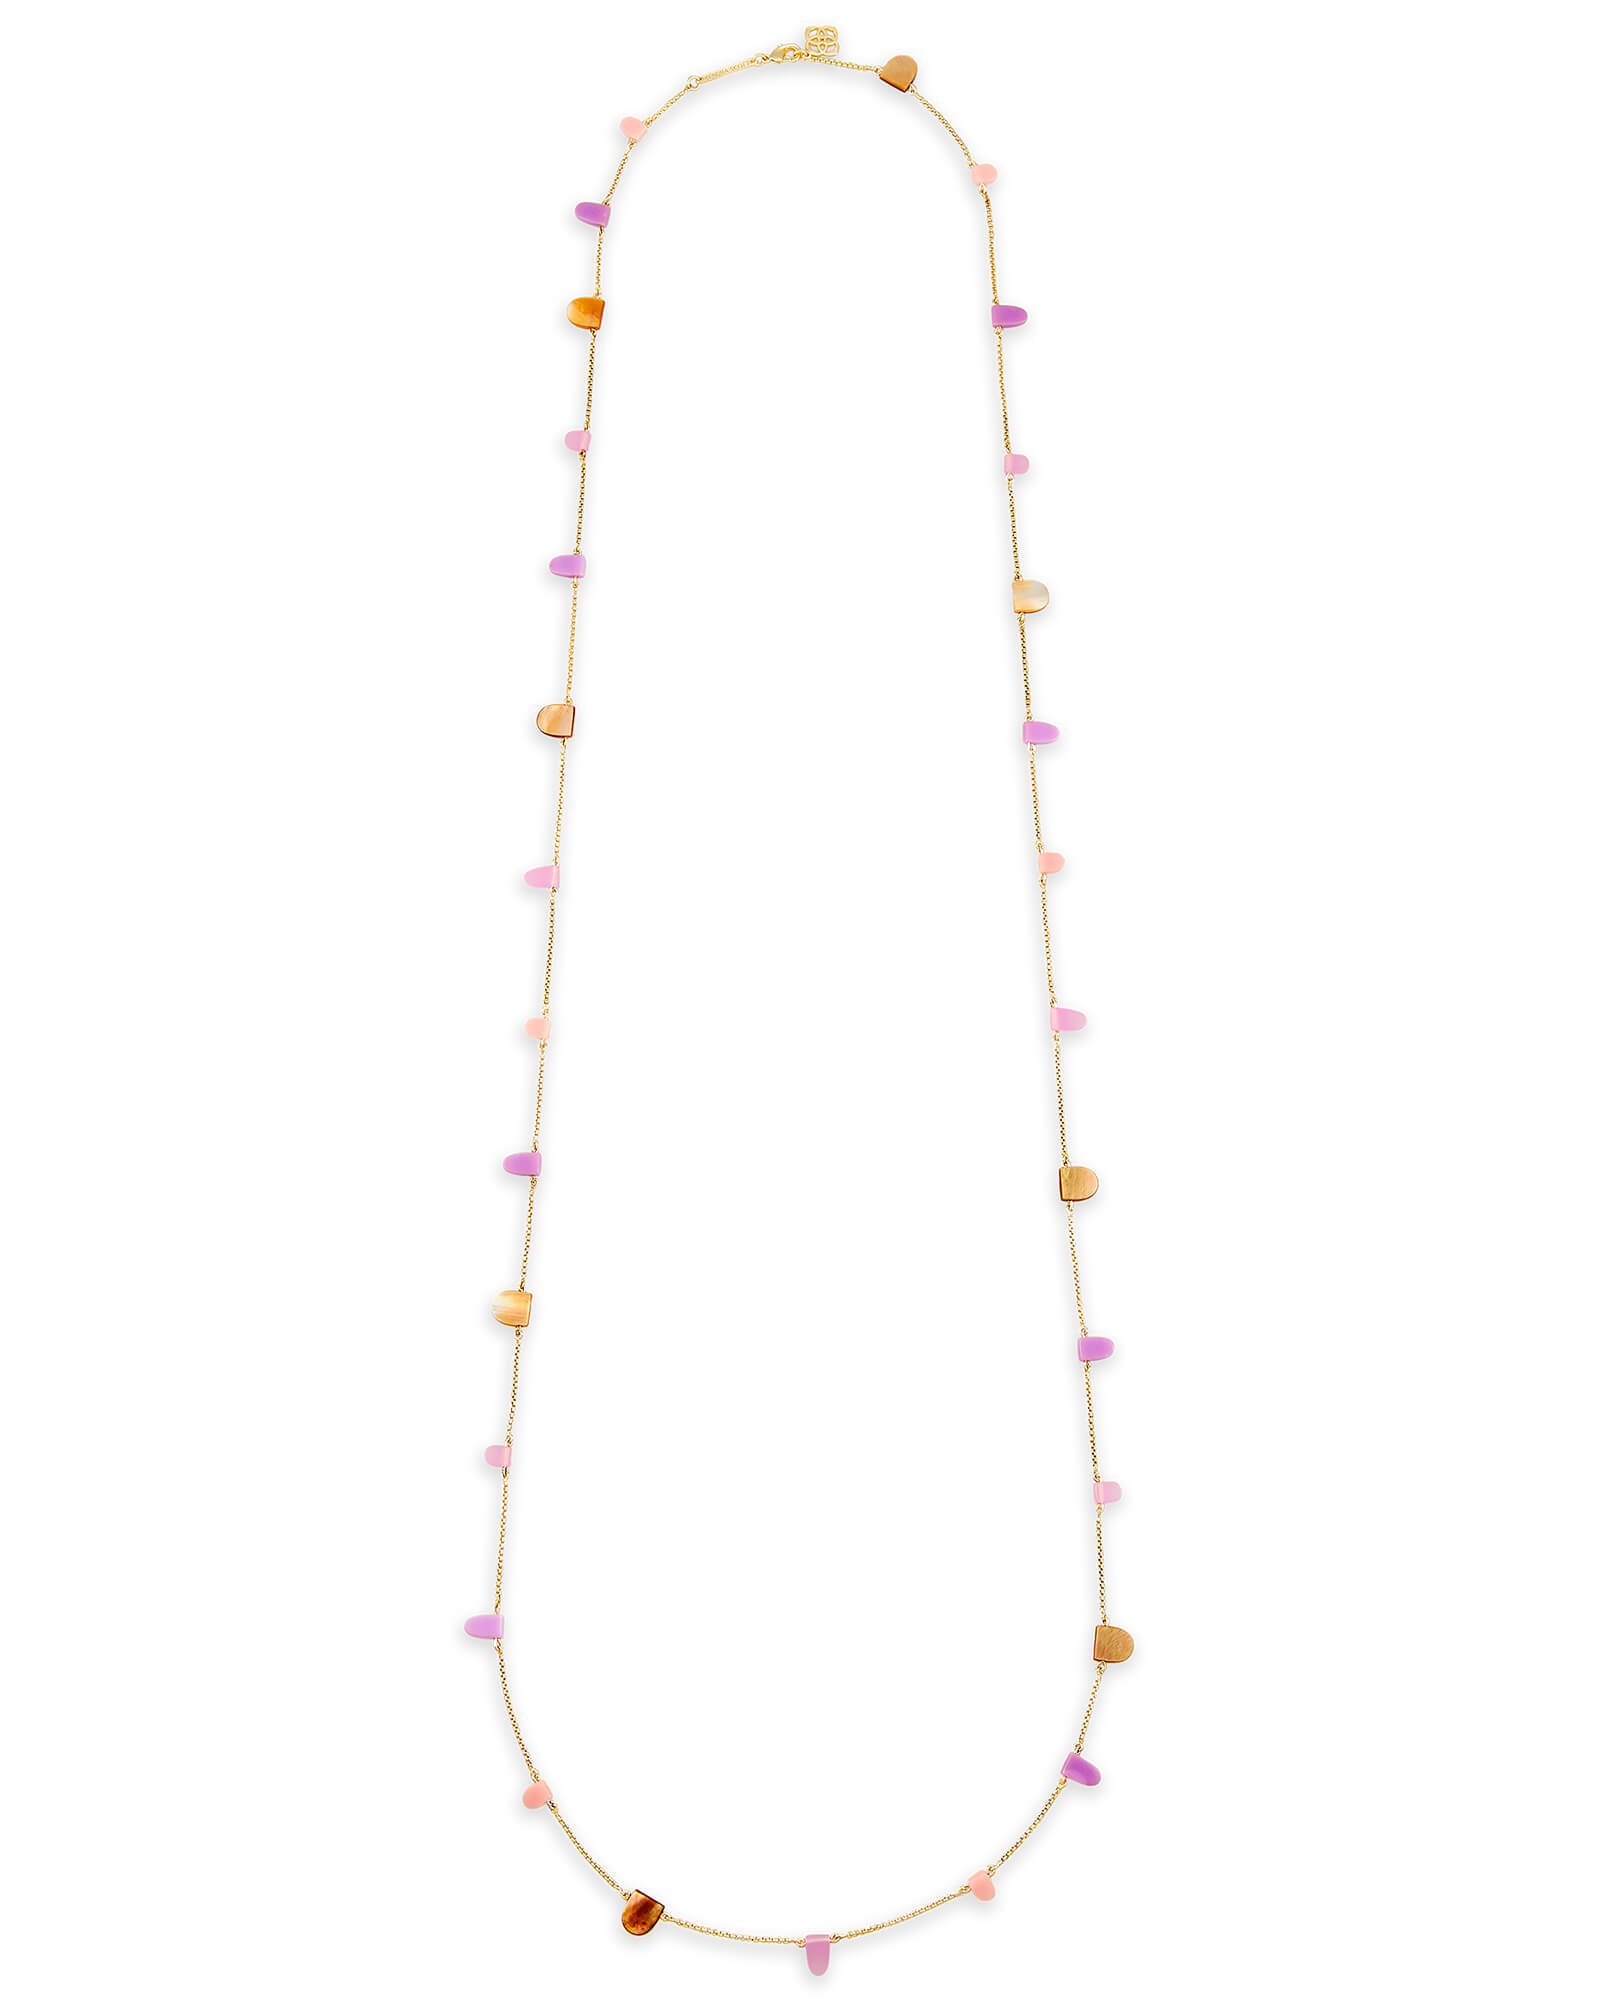 Leola Long Necklace in Blush Mix